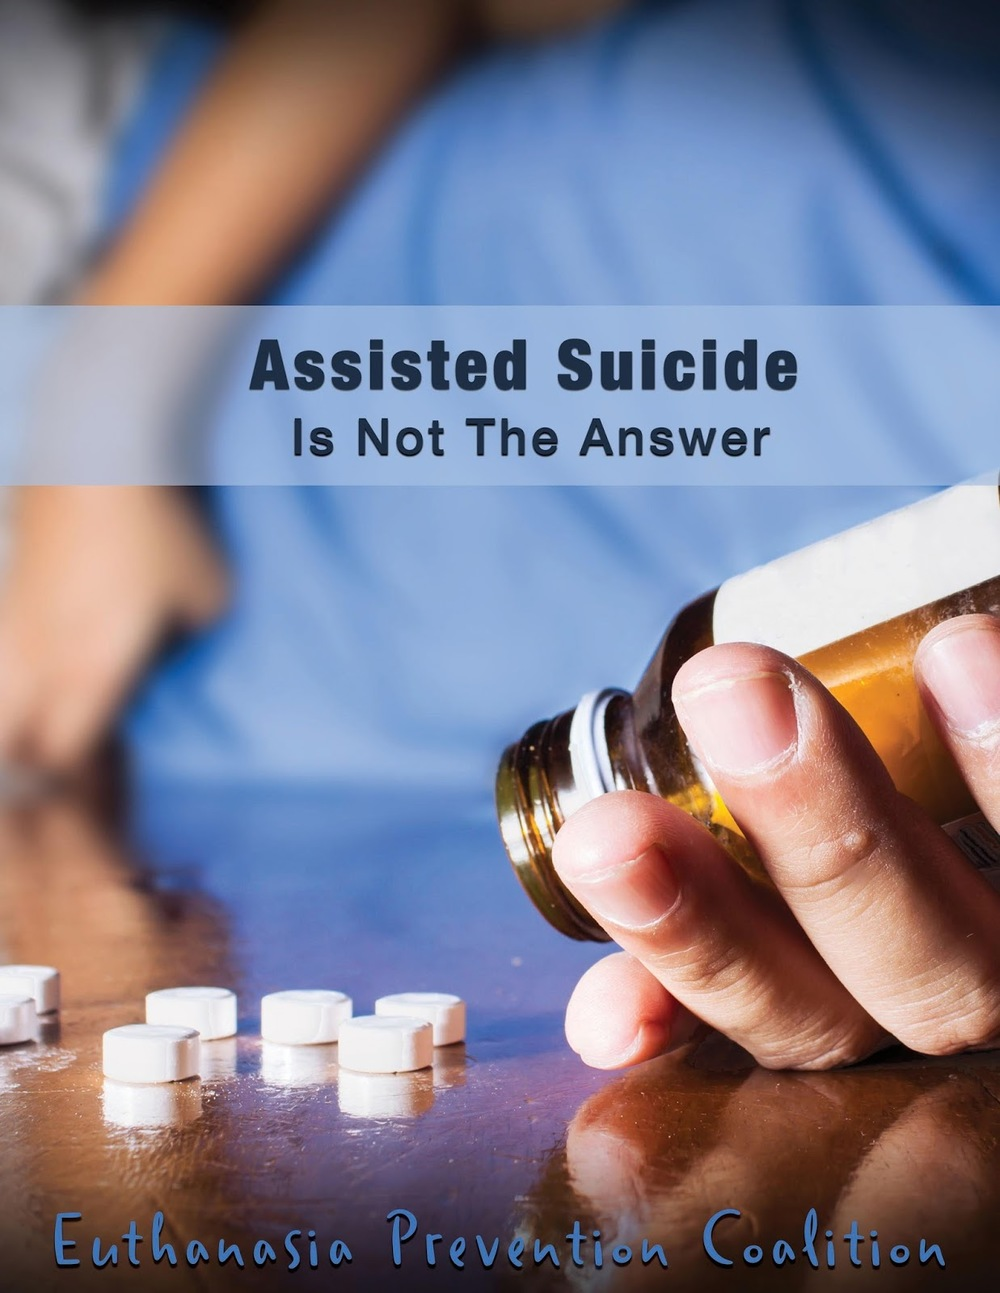 legalizing assistive suicide Supporters of legislation legalizing assisted suicide claim that all persons have a moral right to choose freely what they will do with their lives as long as they inflict no harm on others this right of free choice includes the right to end one's life when we choose.